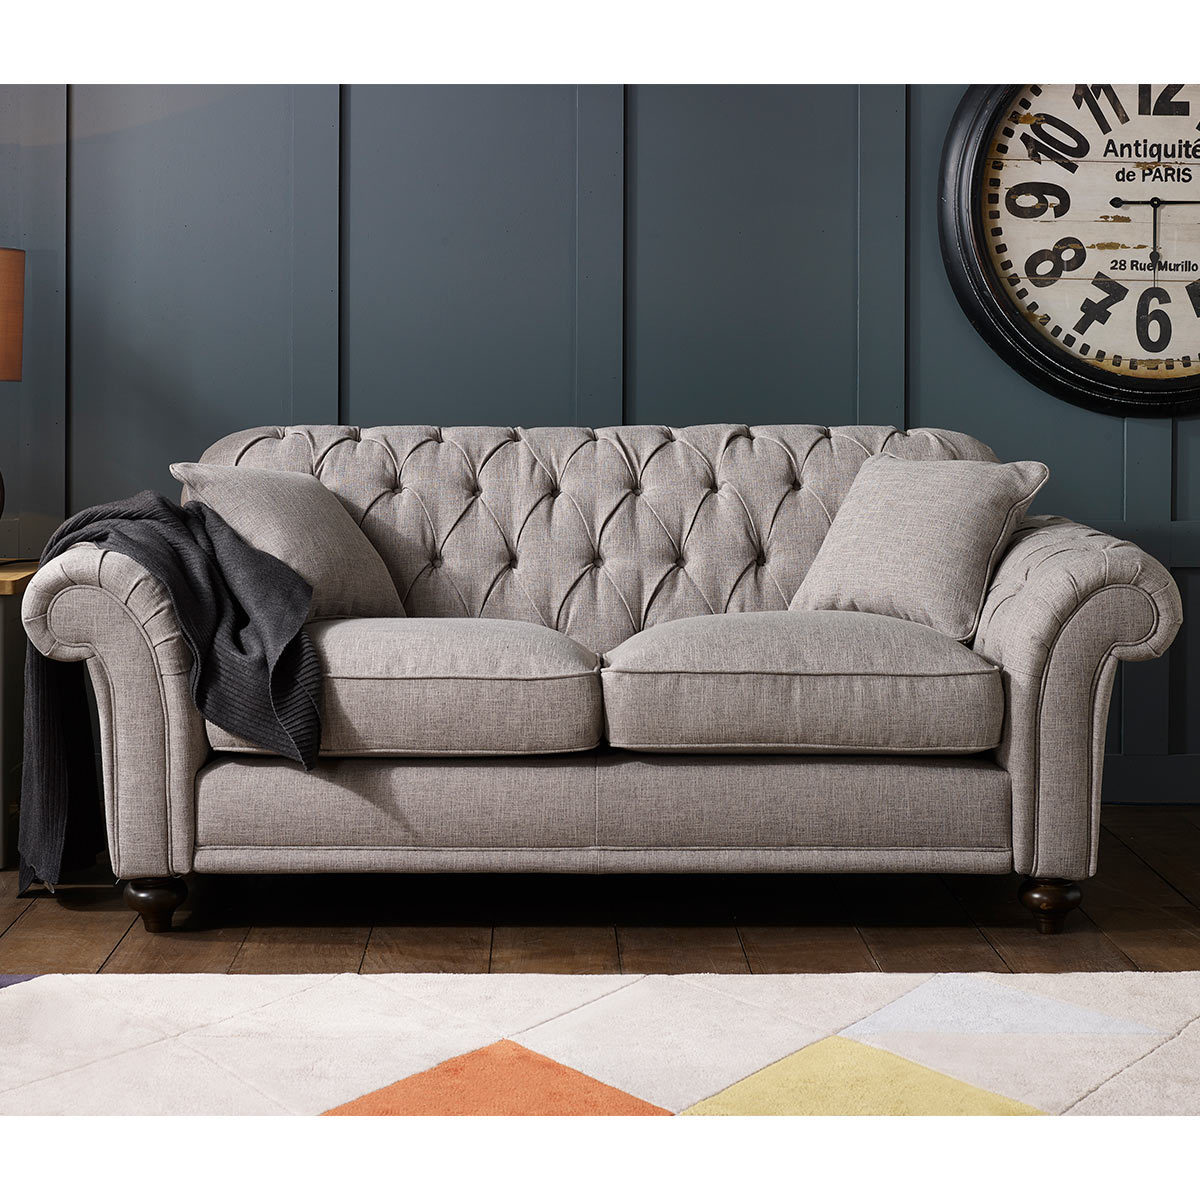 Costco Uk Sofa Bed Baci Living Room